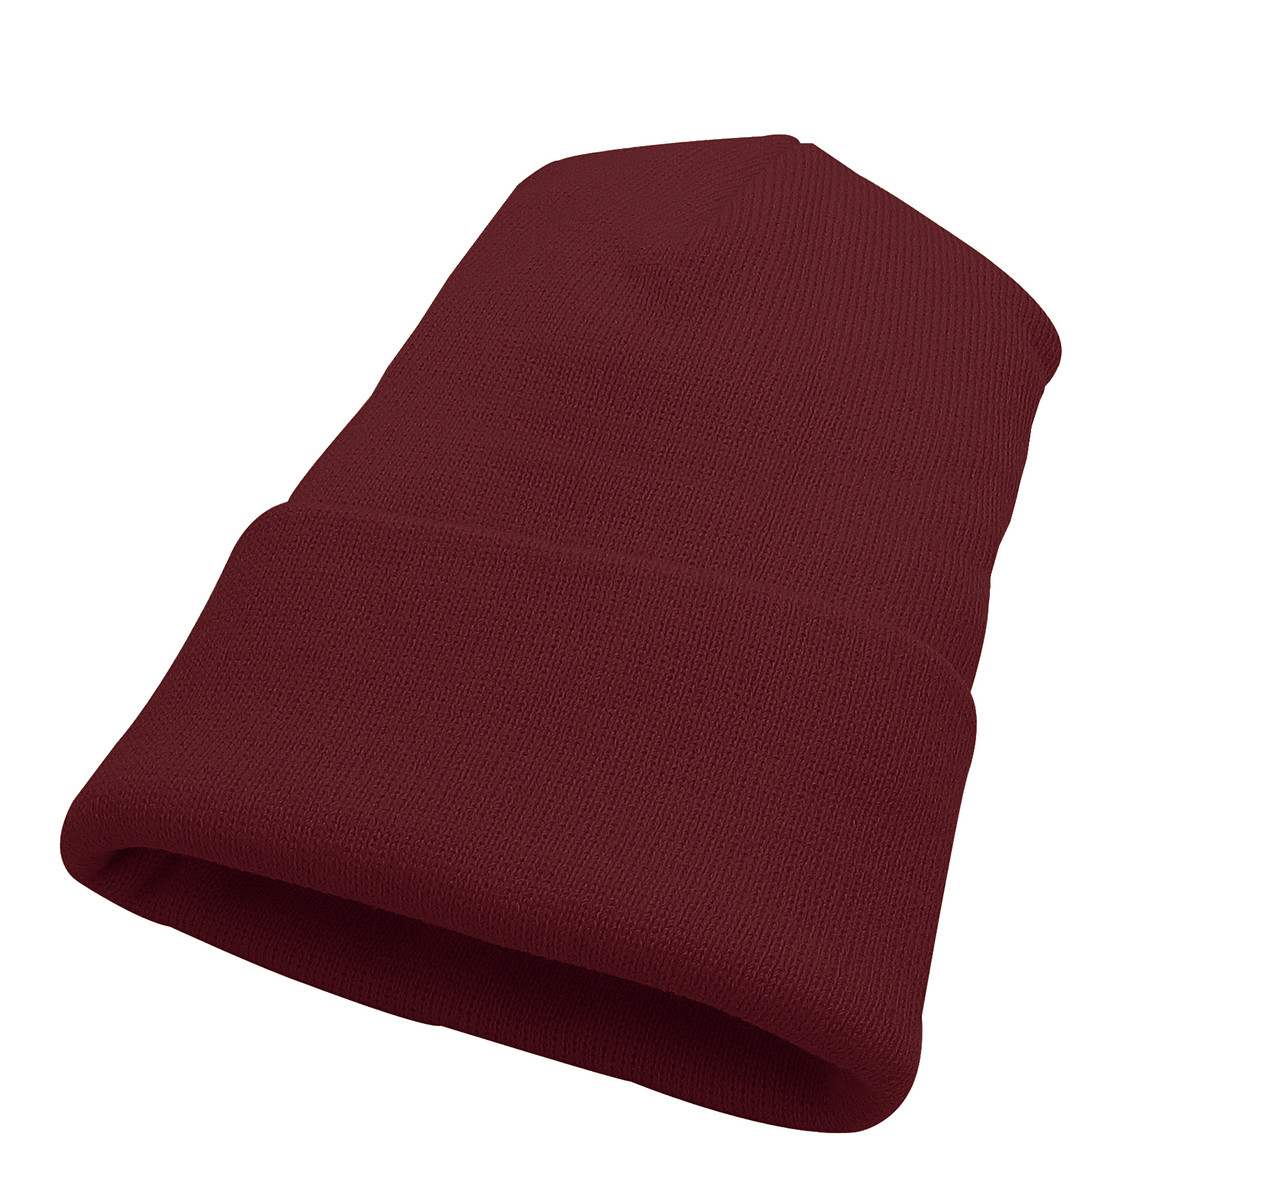 393c2339044 Burgundy AC1010 Acrylic Knit Winter Toque with Cuff